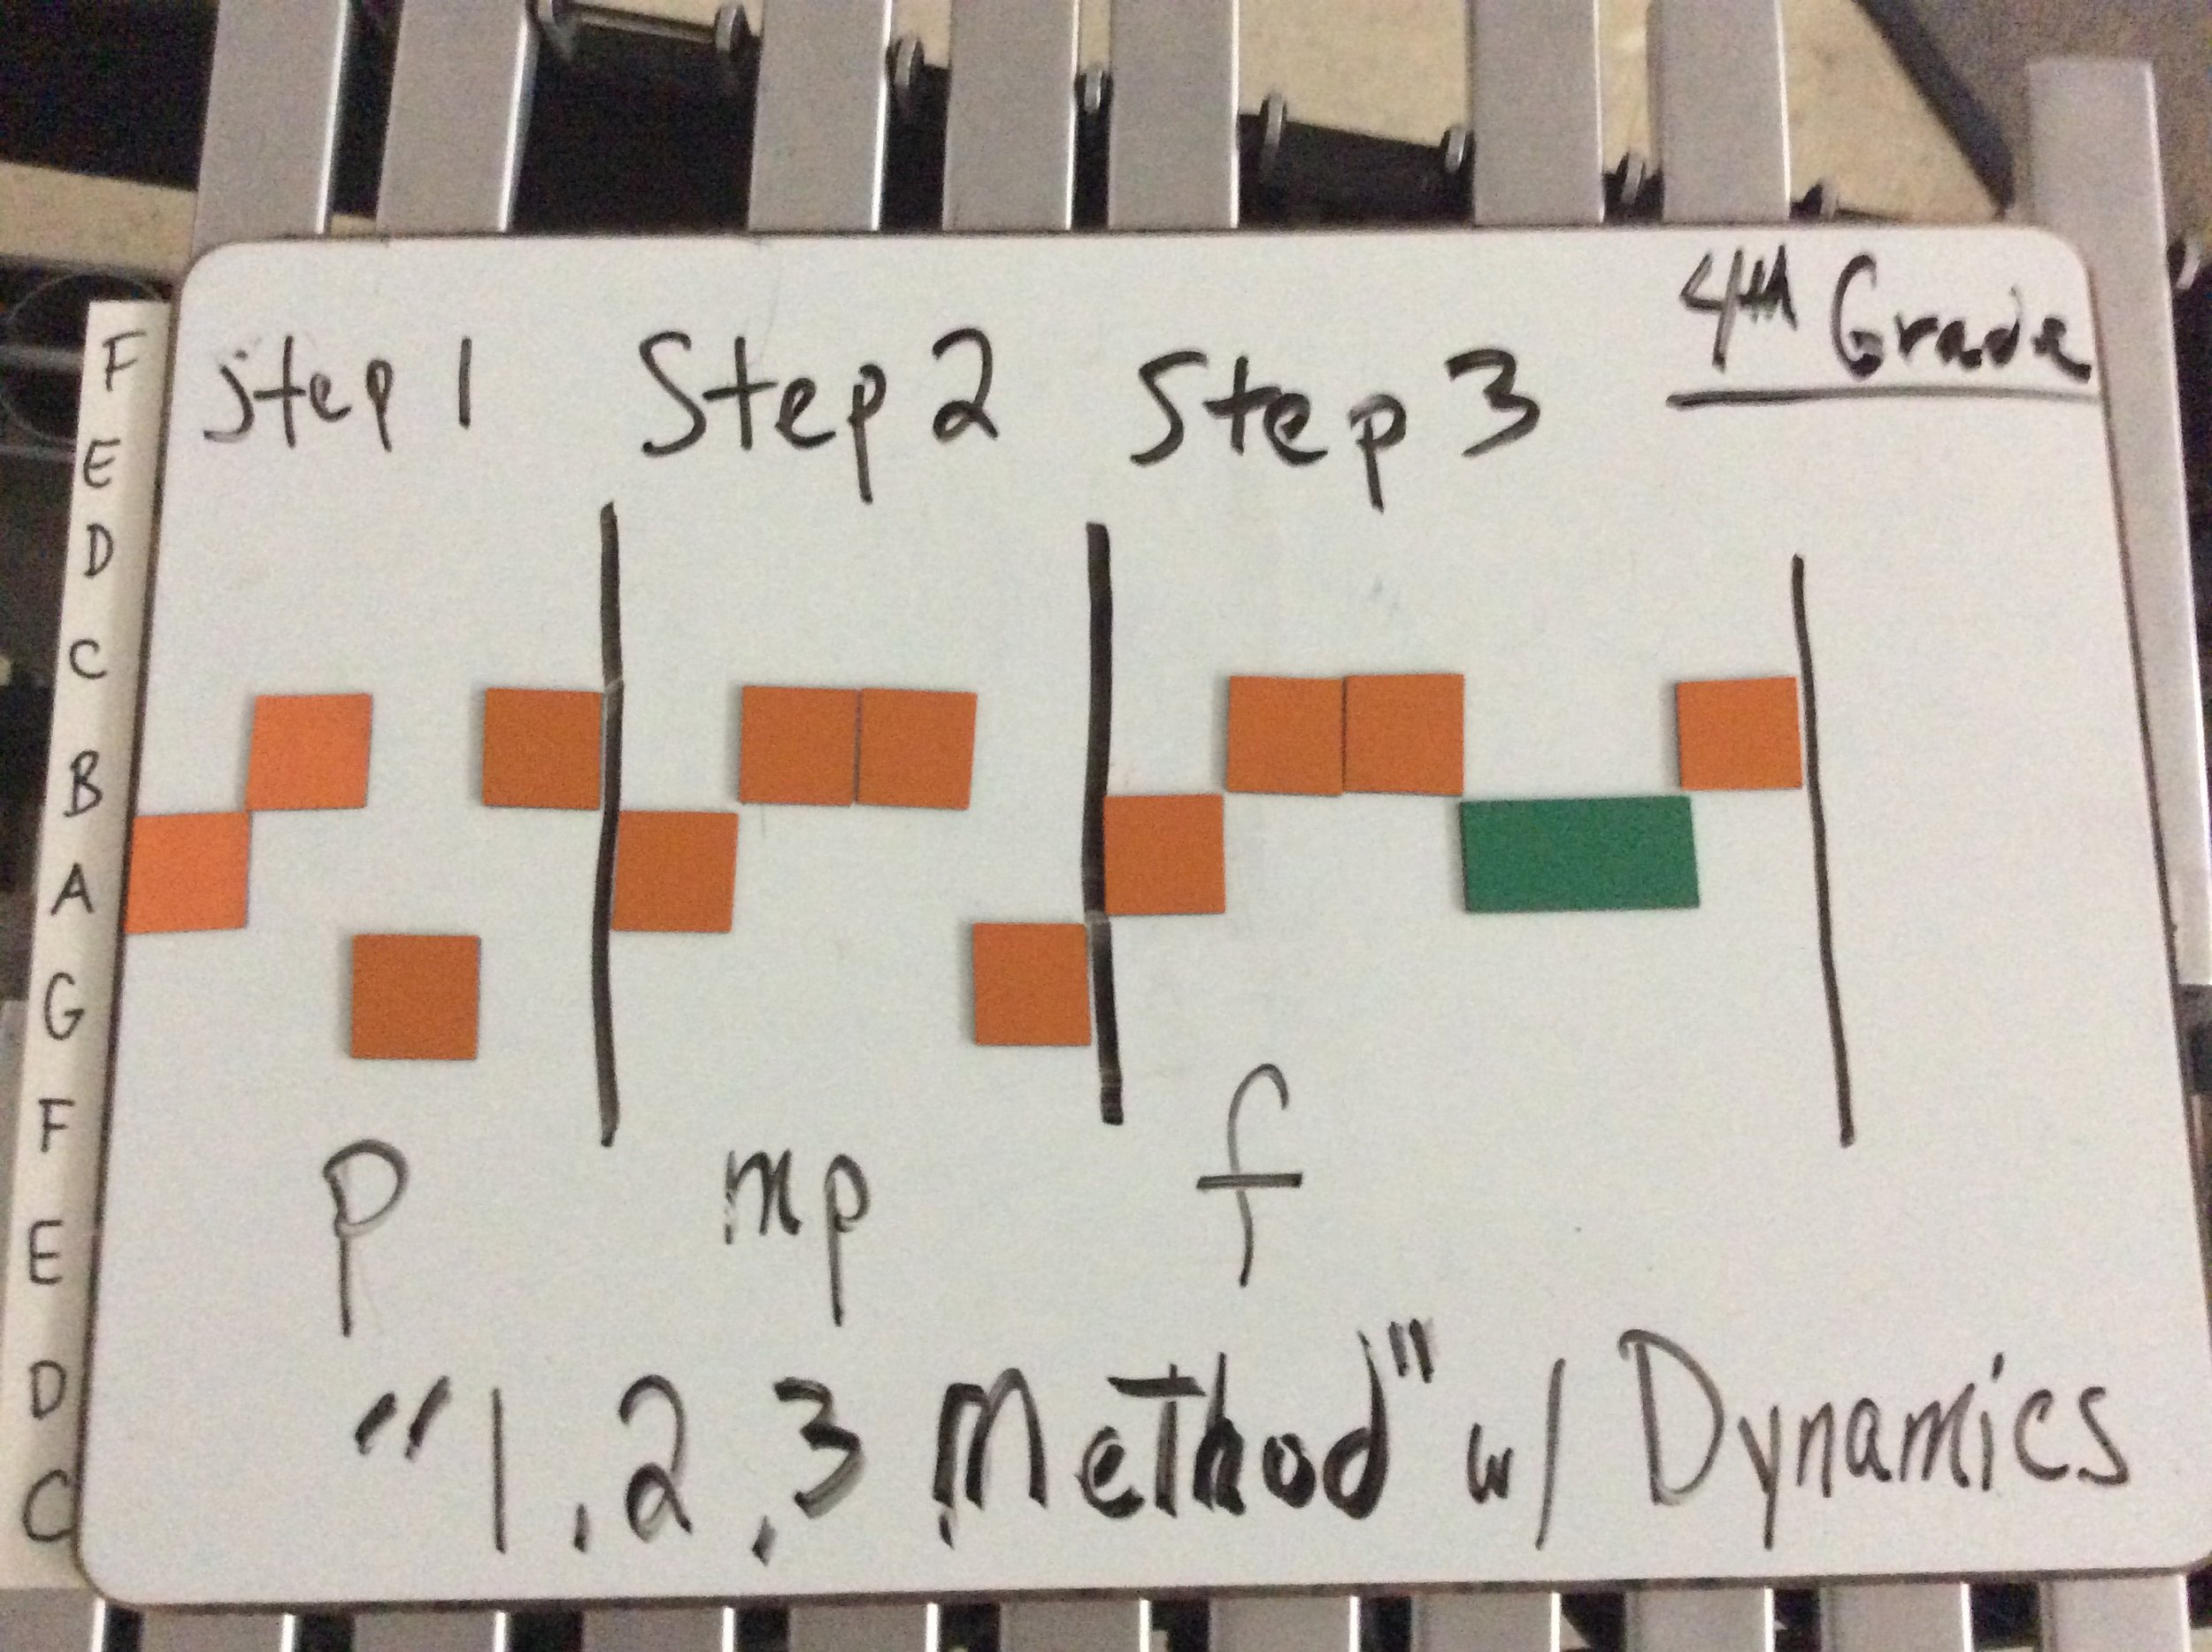 """1, 2, 3 Method"" With Dynamics"